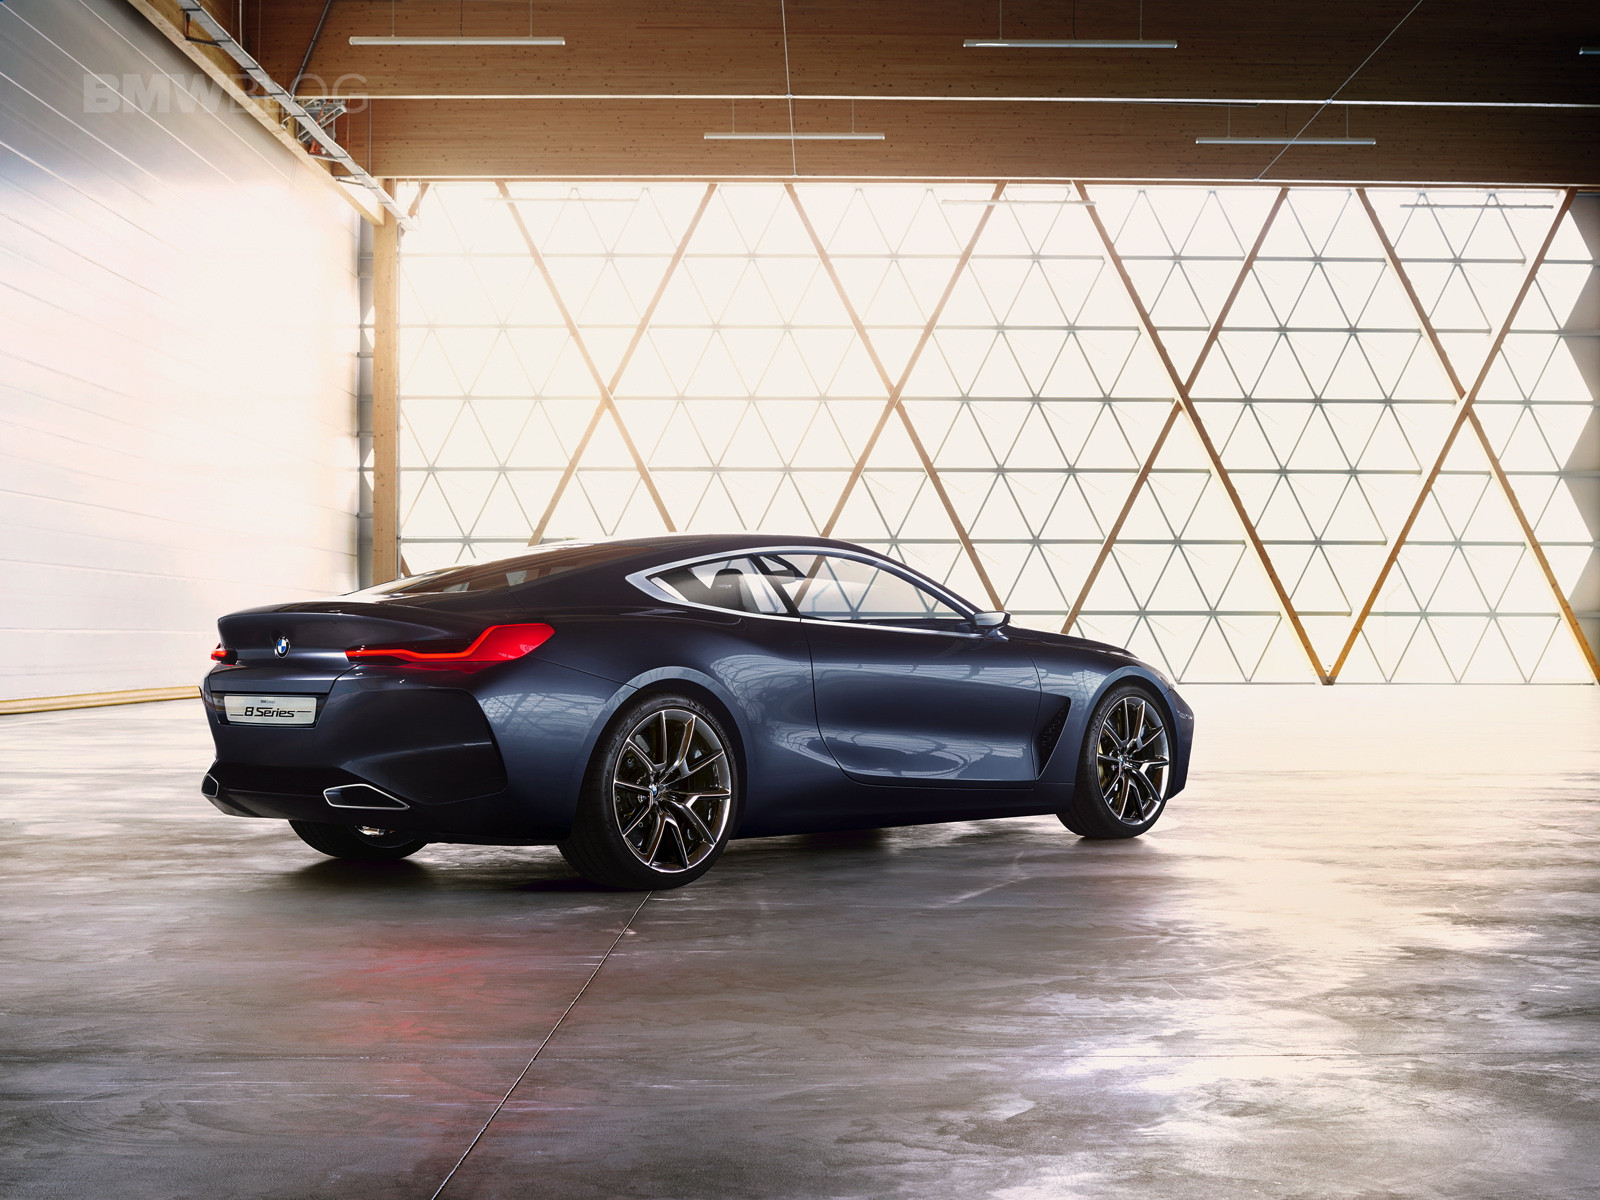 background - BMW 8: Výhodný Aston Martin?